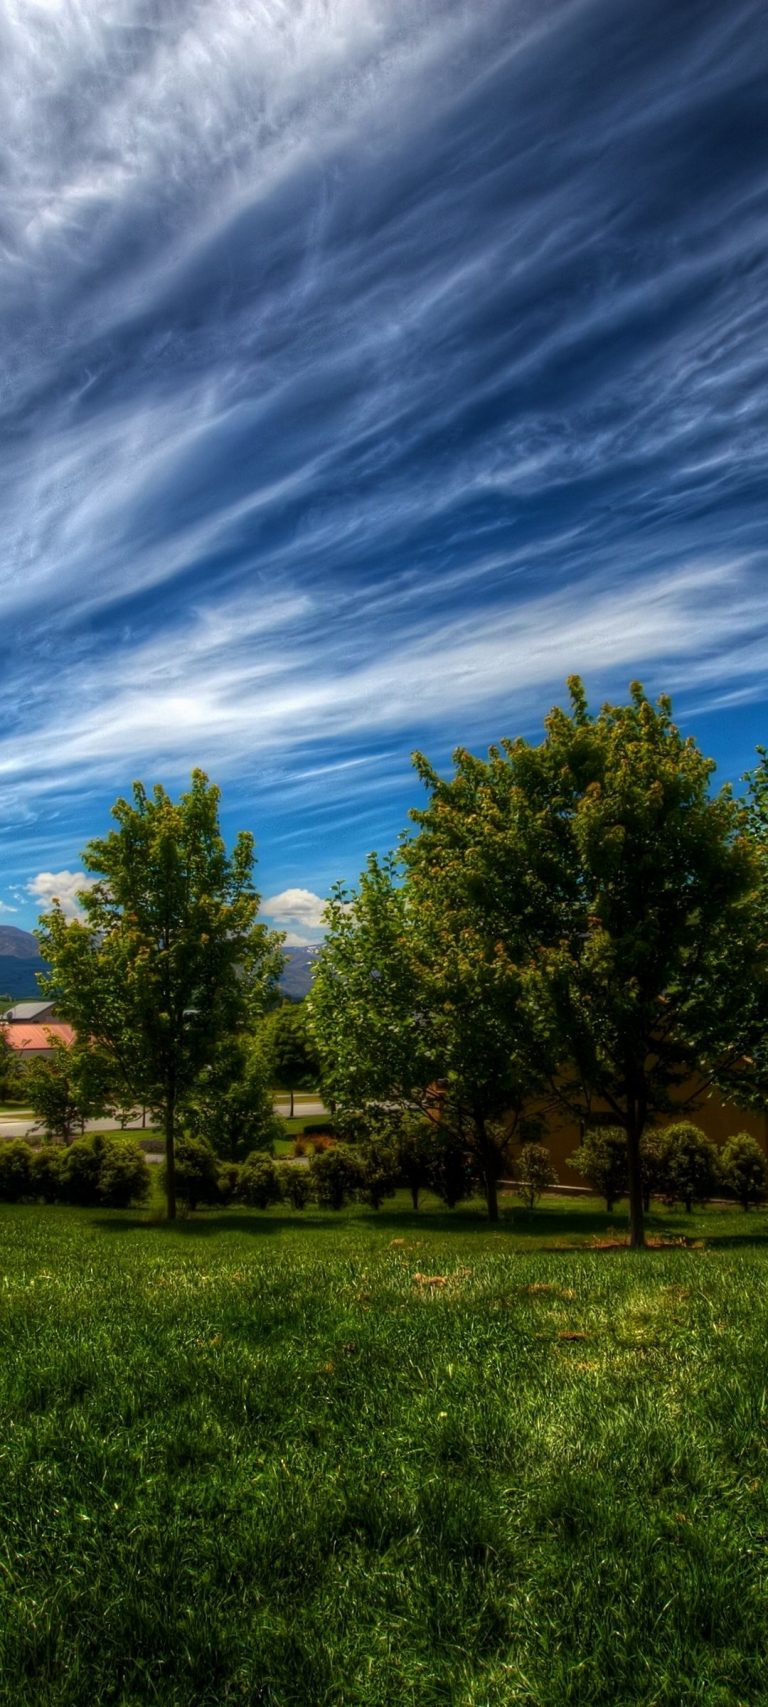 Sky Lines Clouds Trees Grass 1080x2400 768x1707